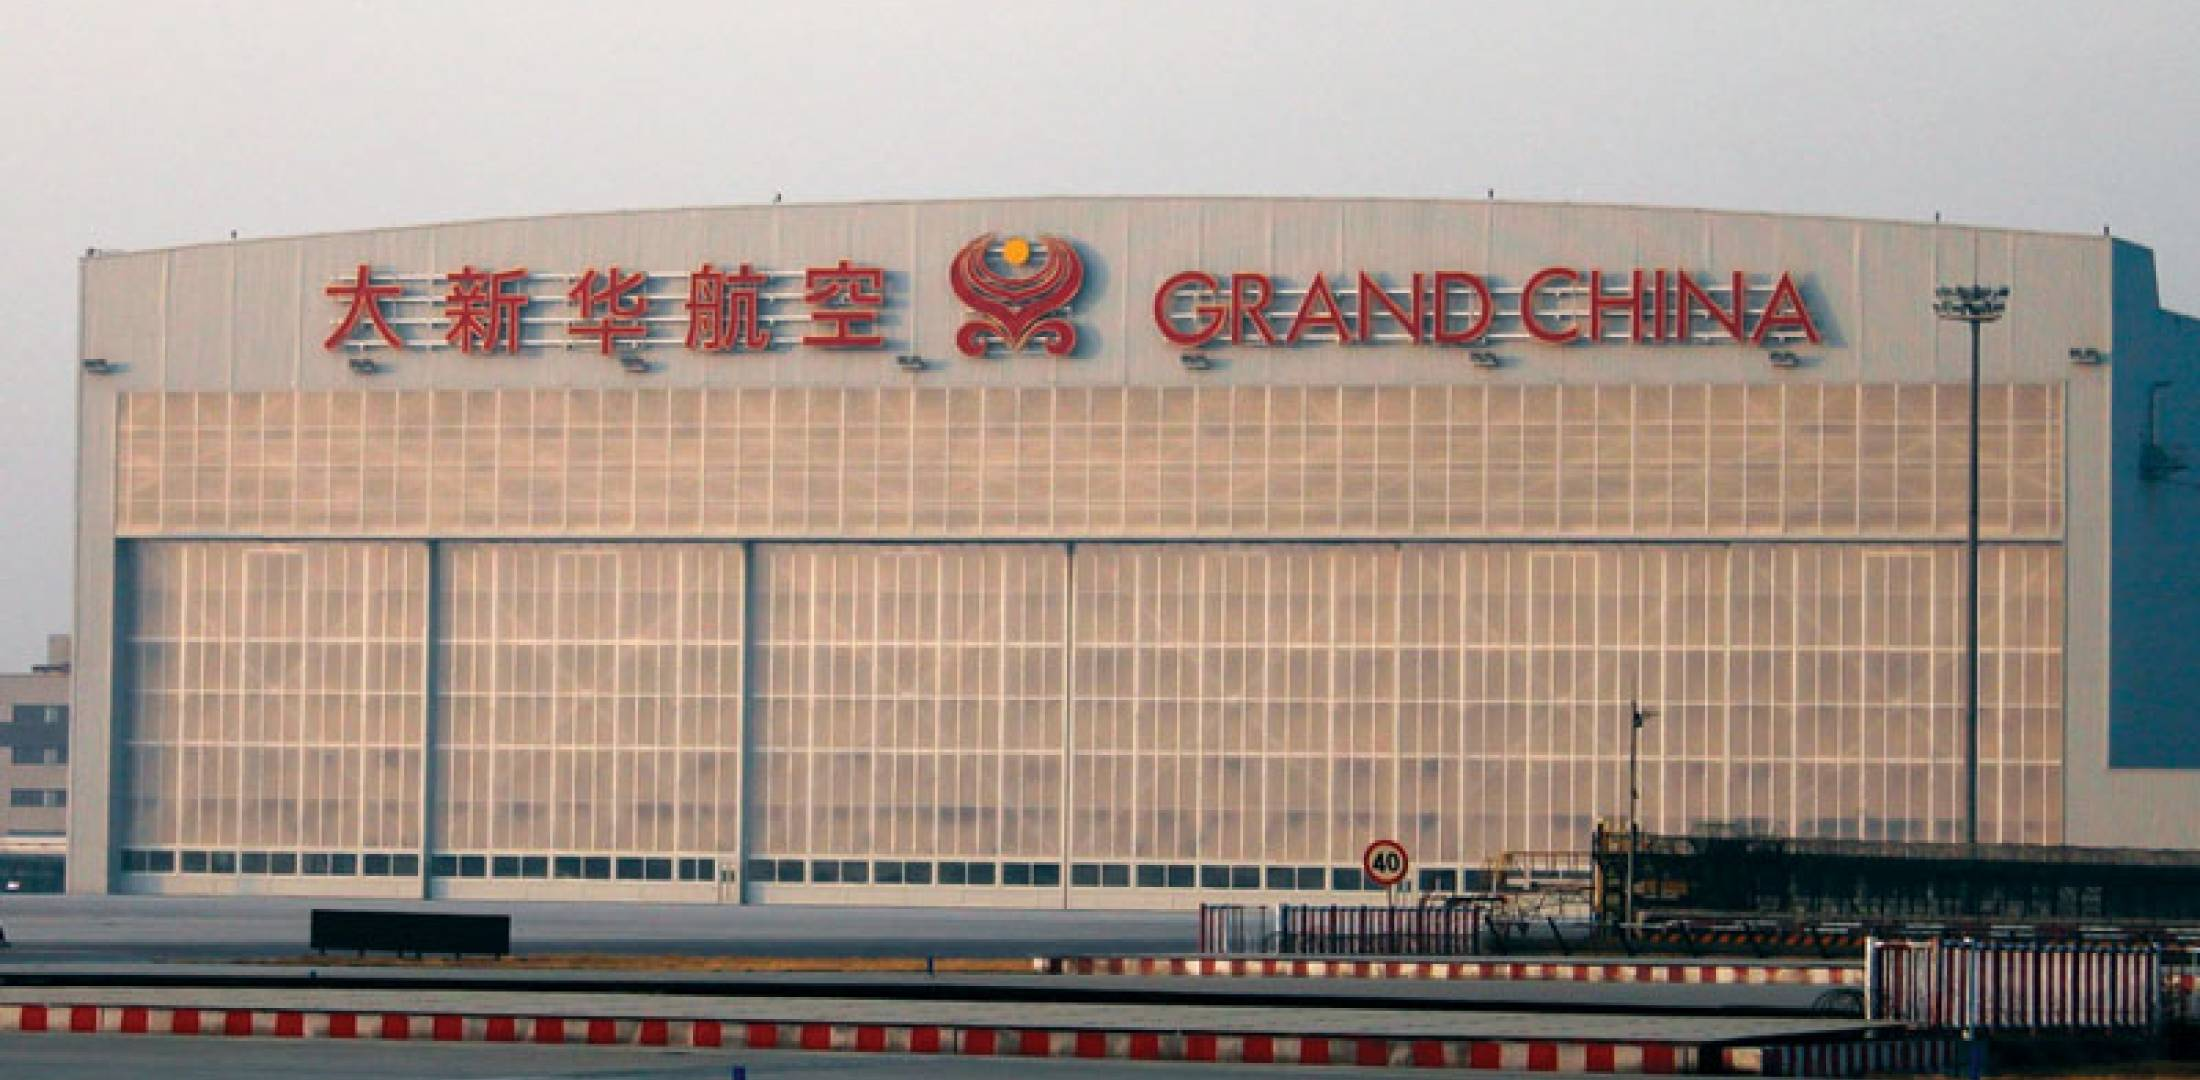 Gulfstream Beijing's new maintenance center in China.